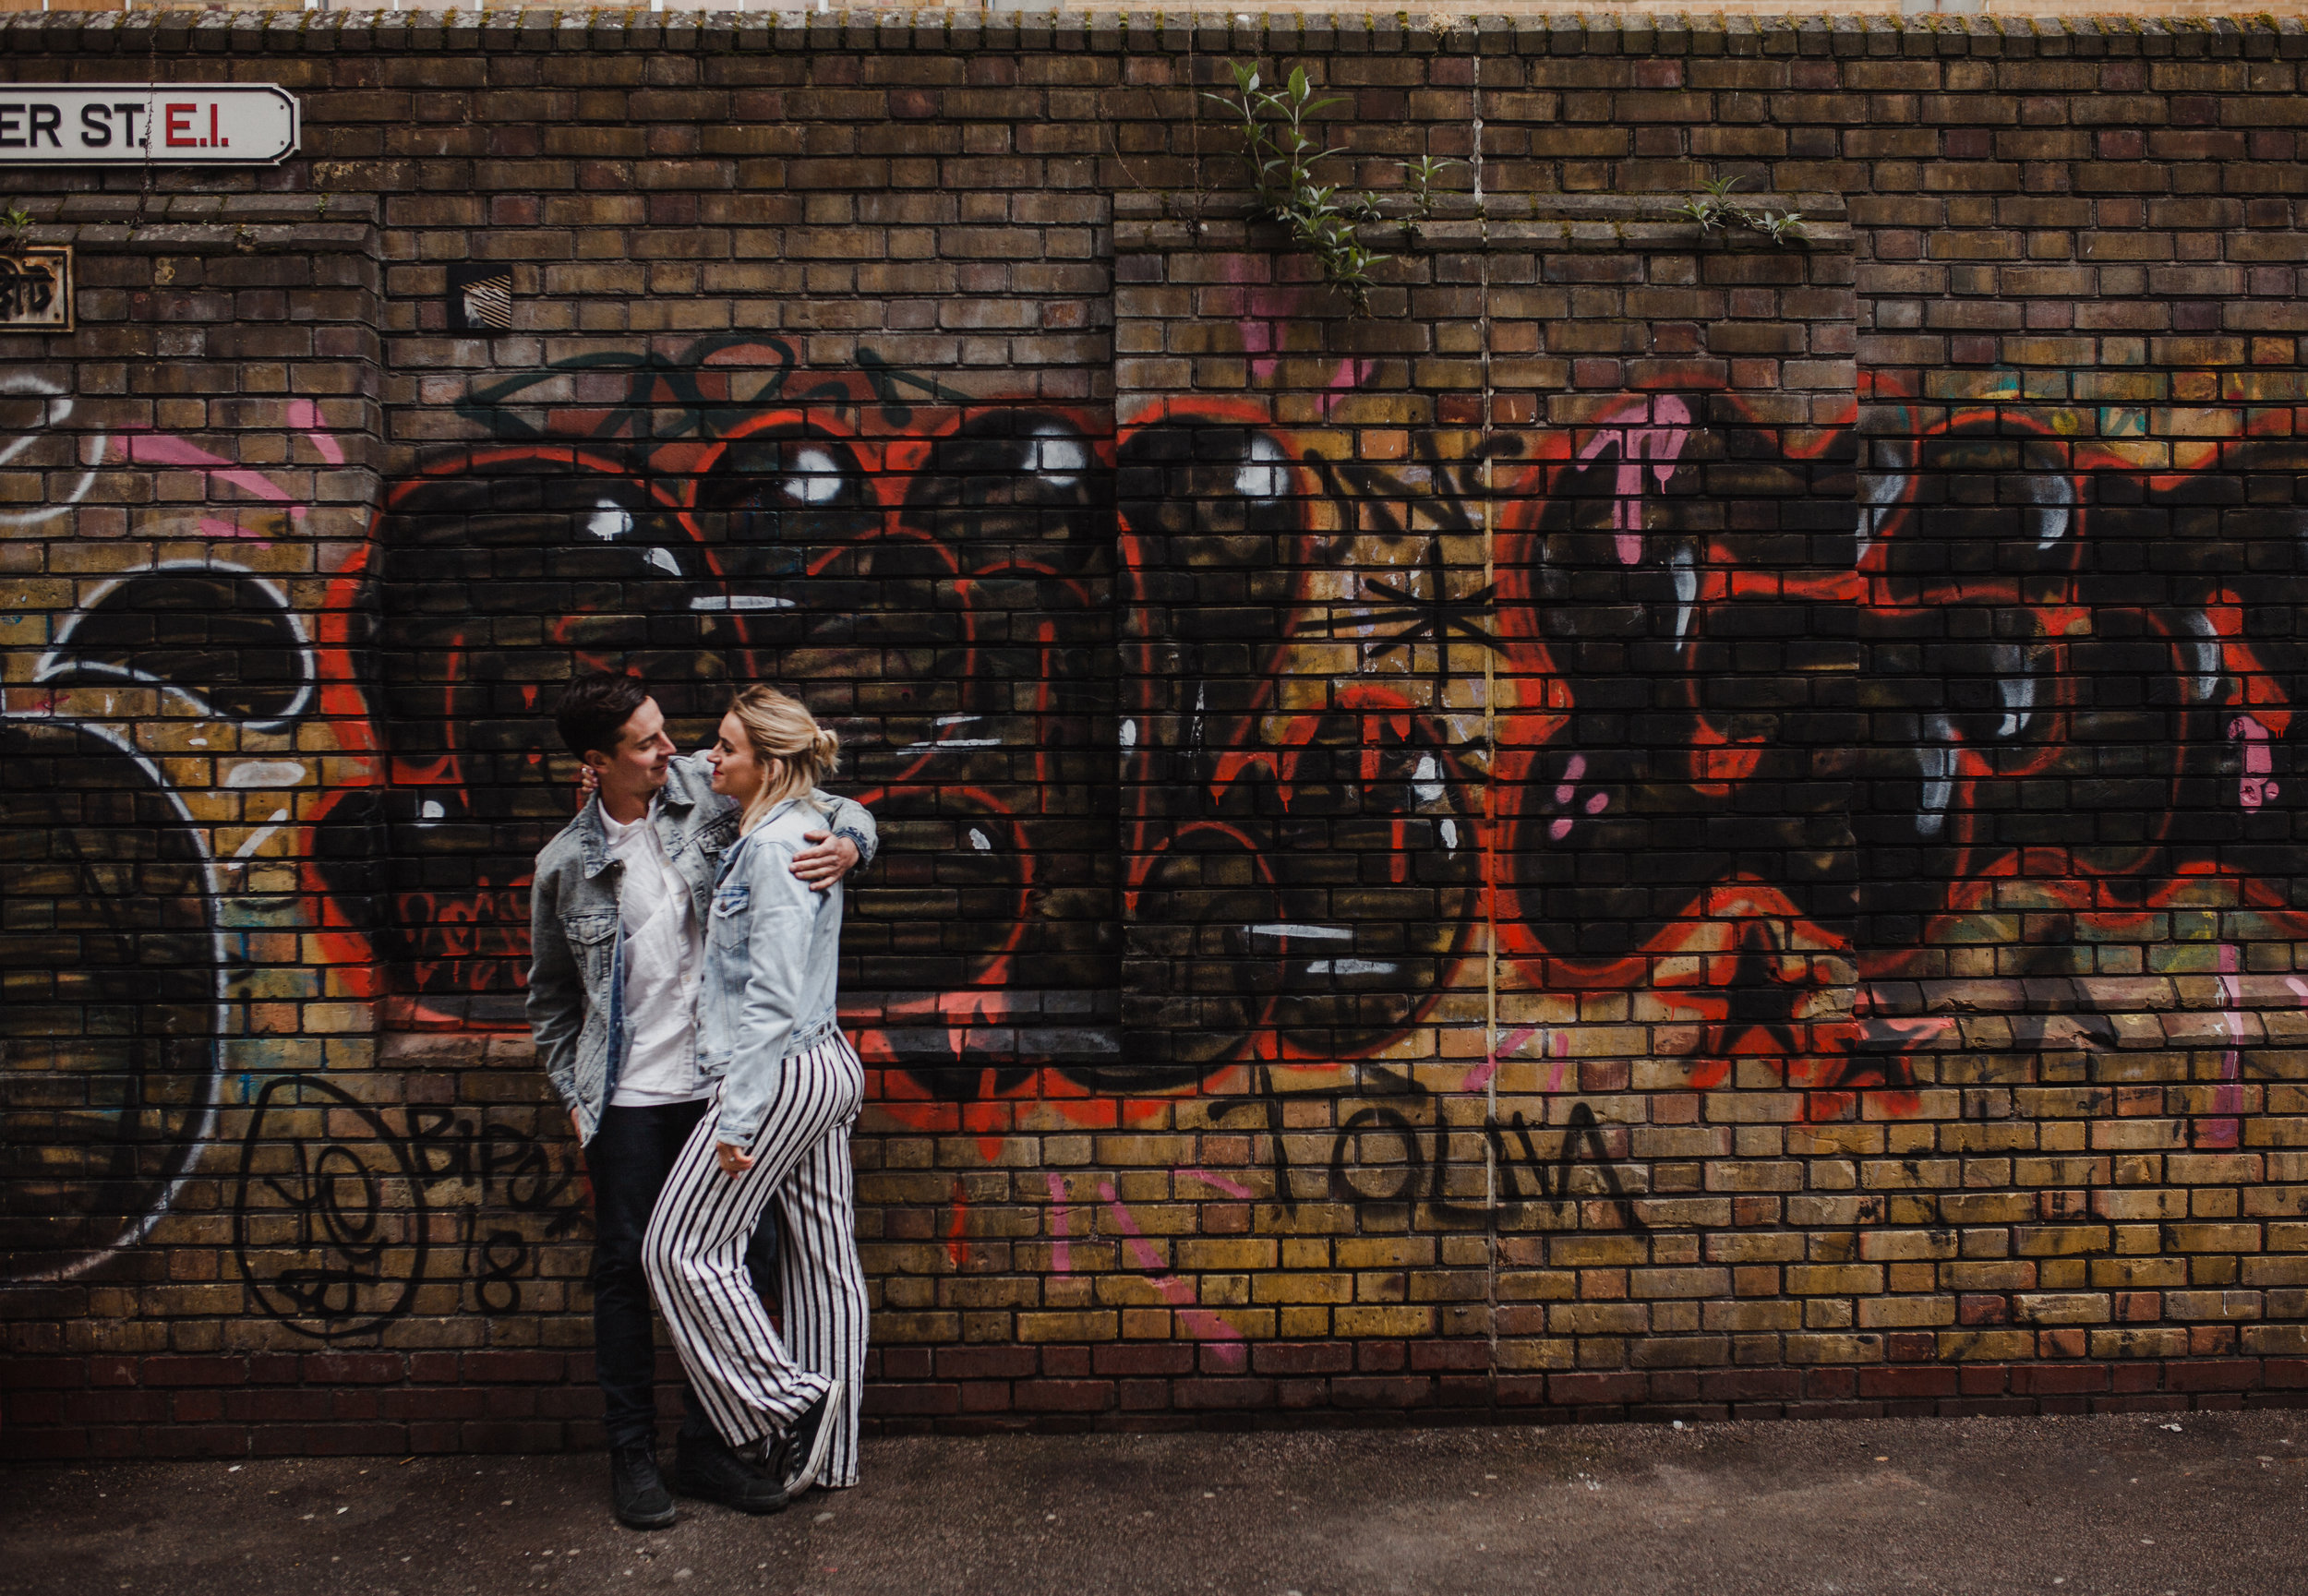 A natural style portrait of couple embracing with a graffiti backdrop.